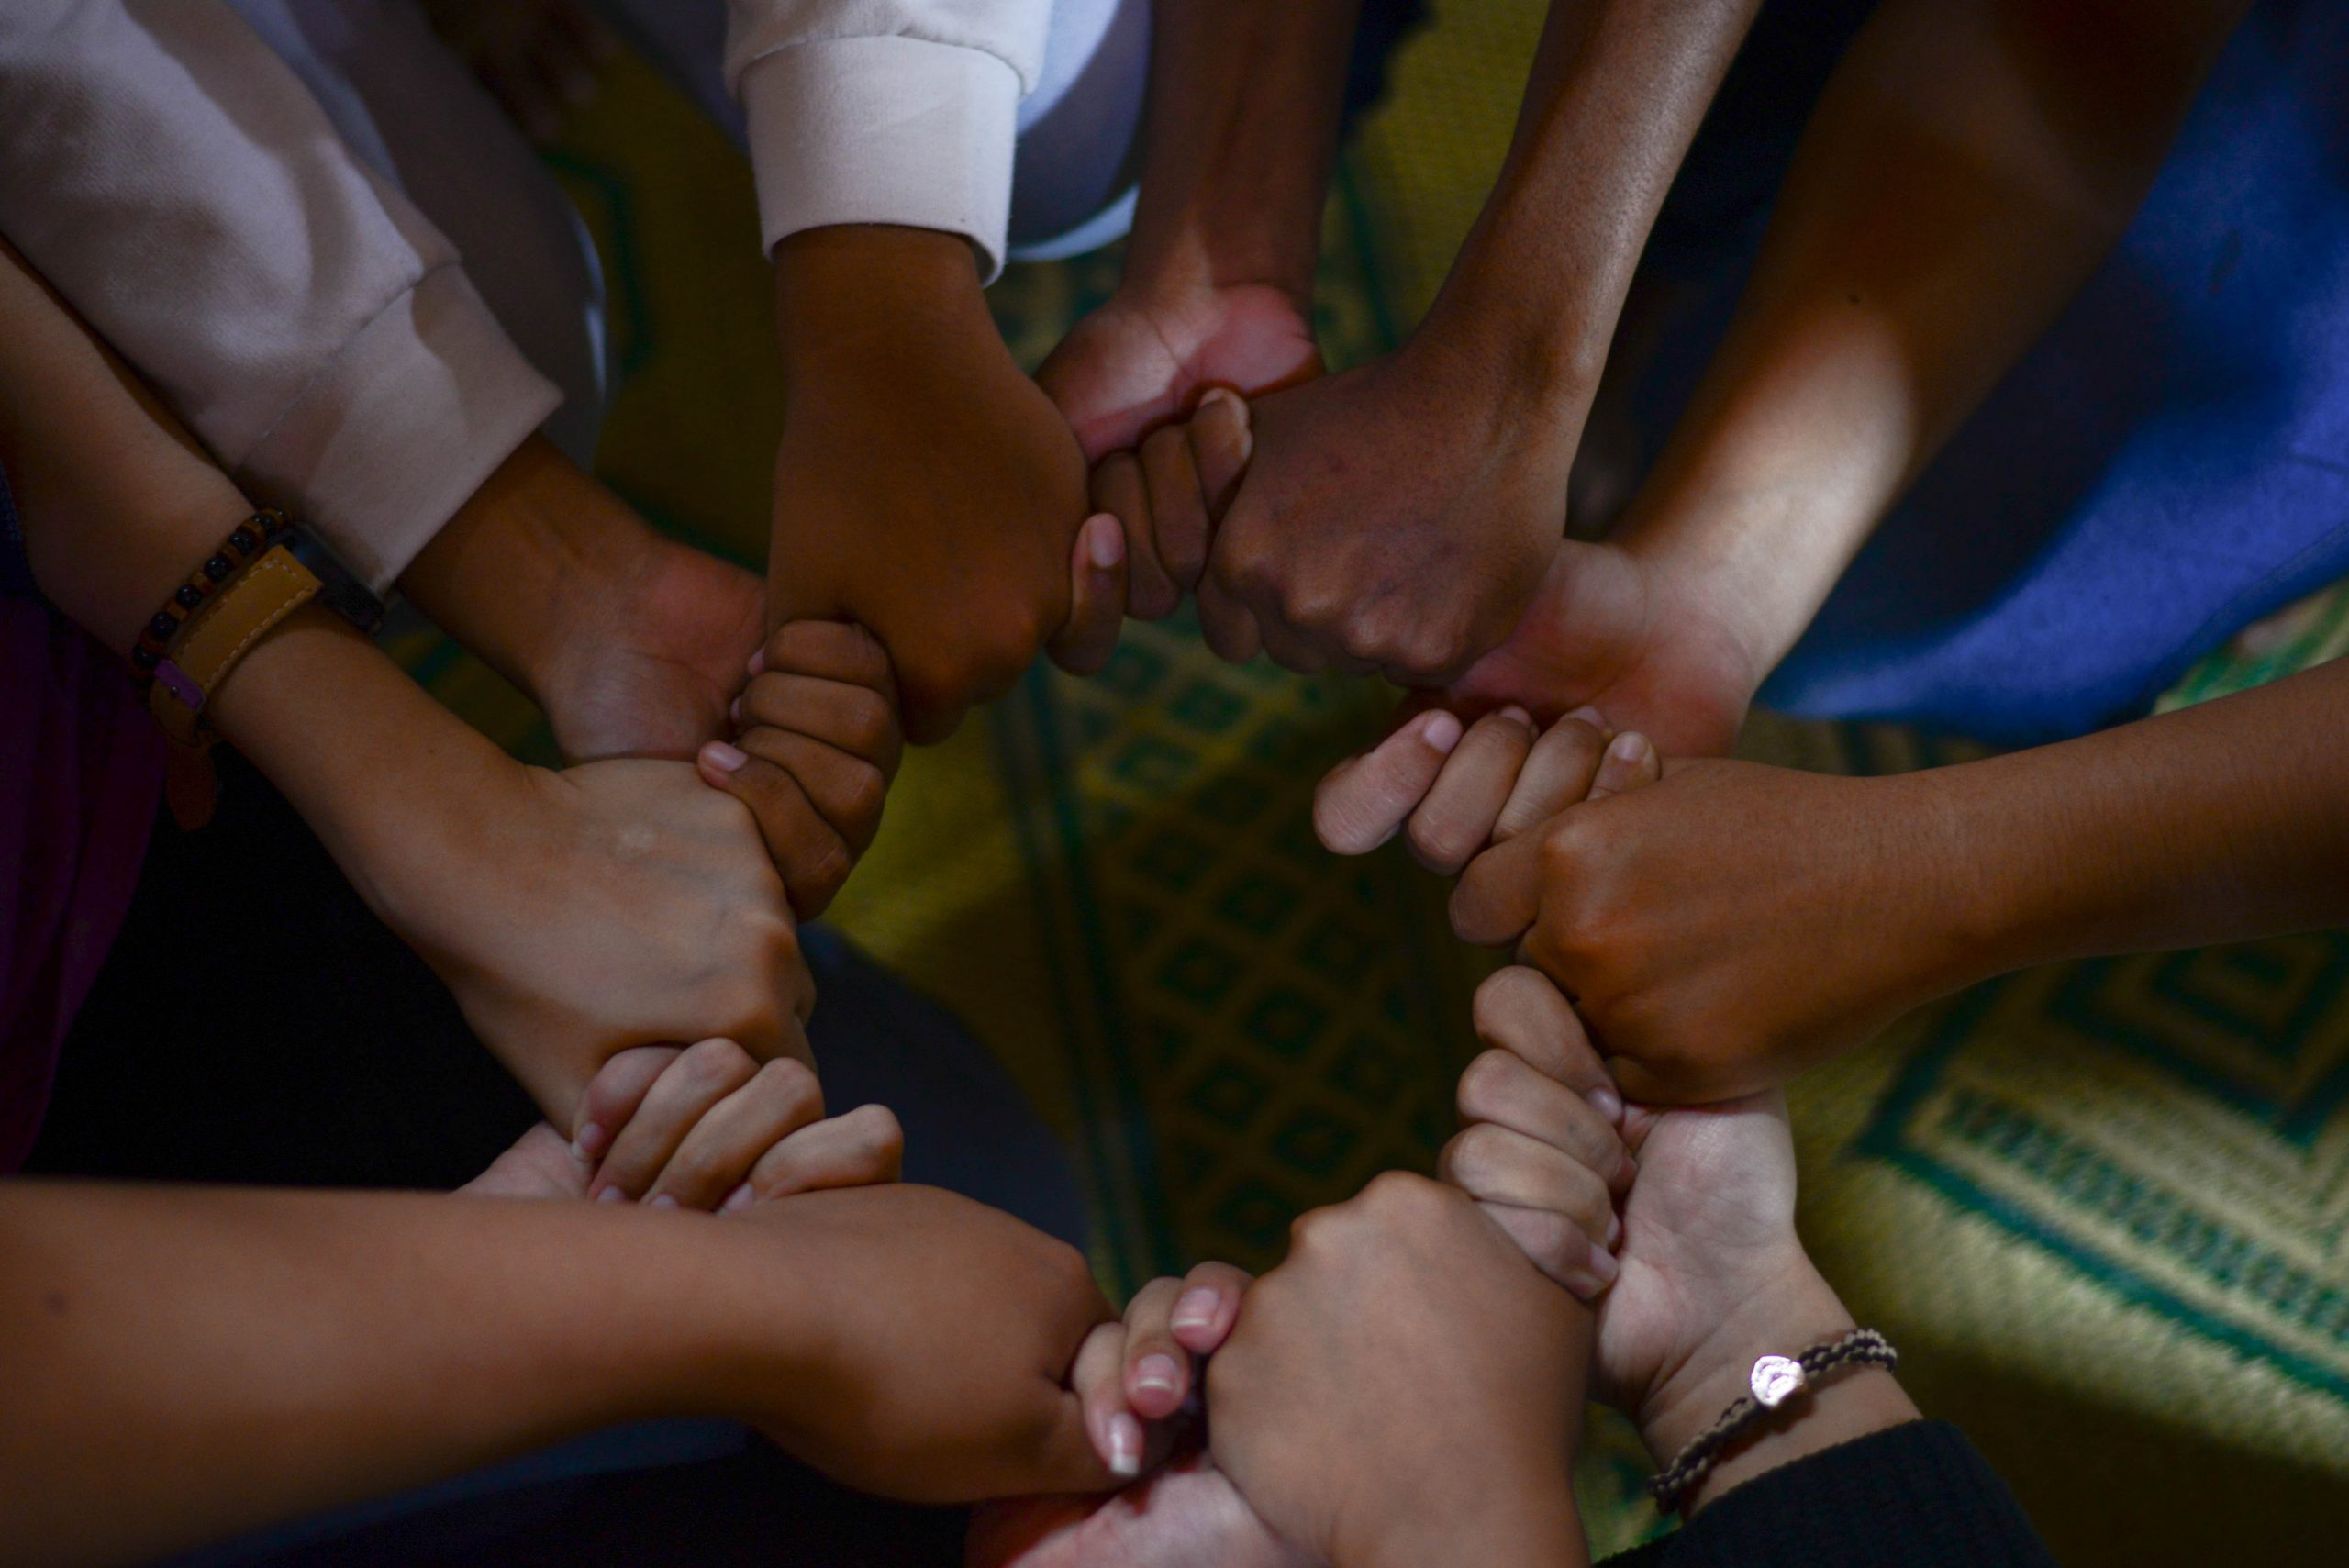 9 Points of Christian Unity for our Divided Times